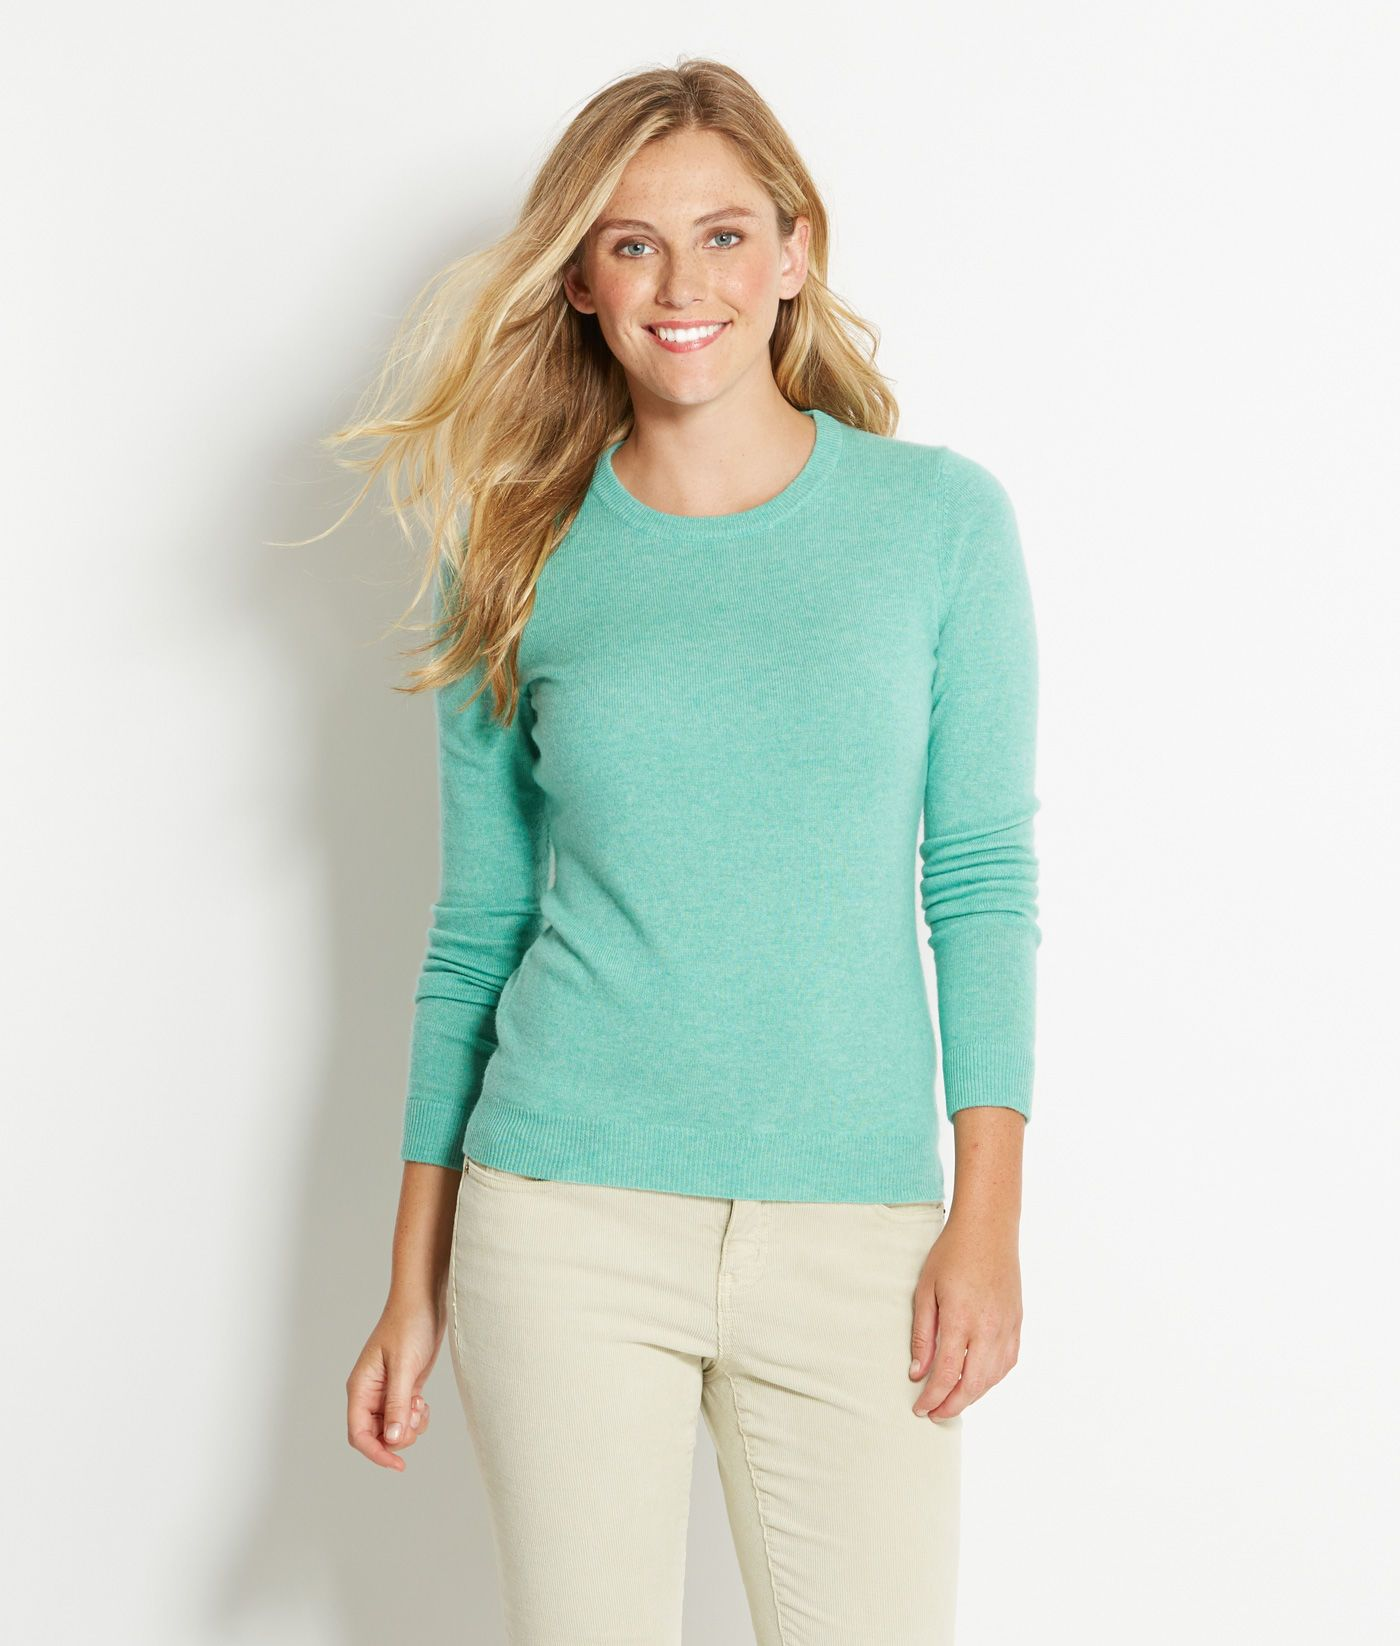 Shop Sweaters: Turnback Crewneck Sweater for Women | Vineyard ...